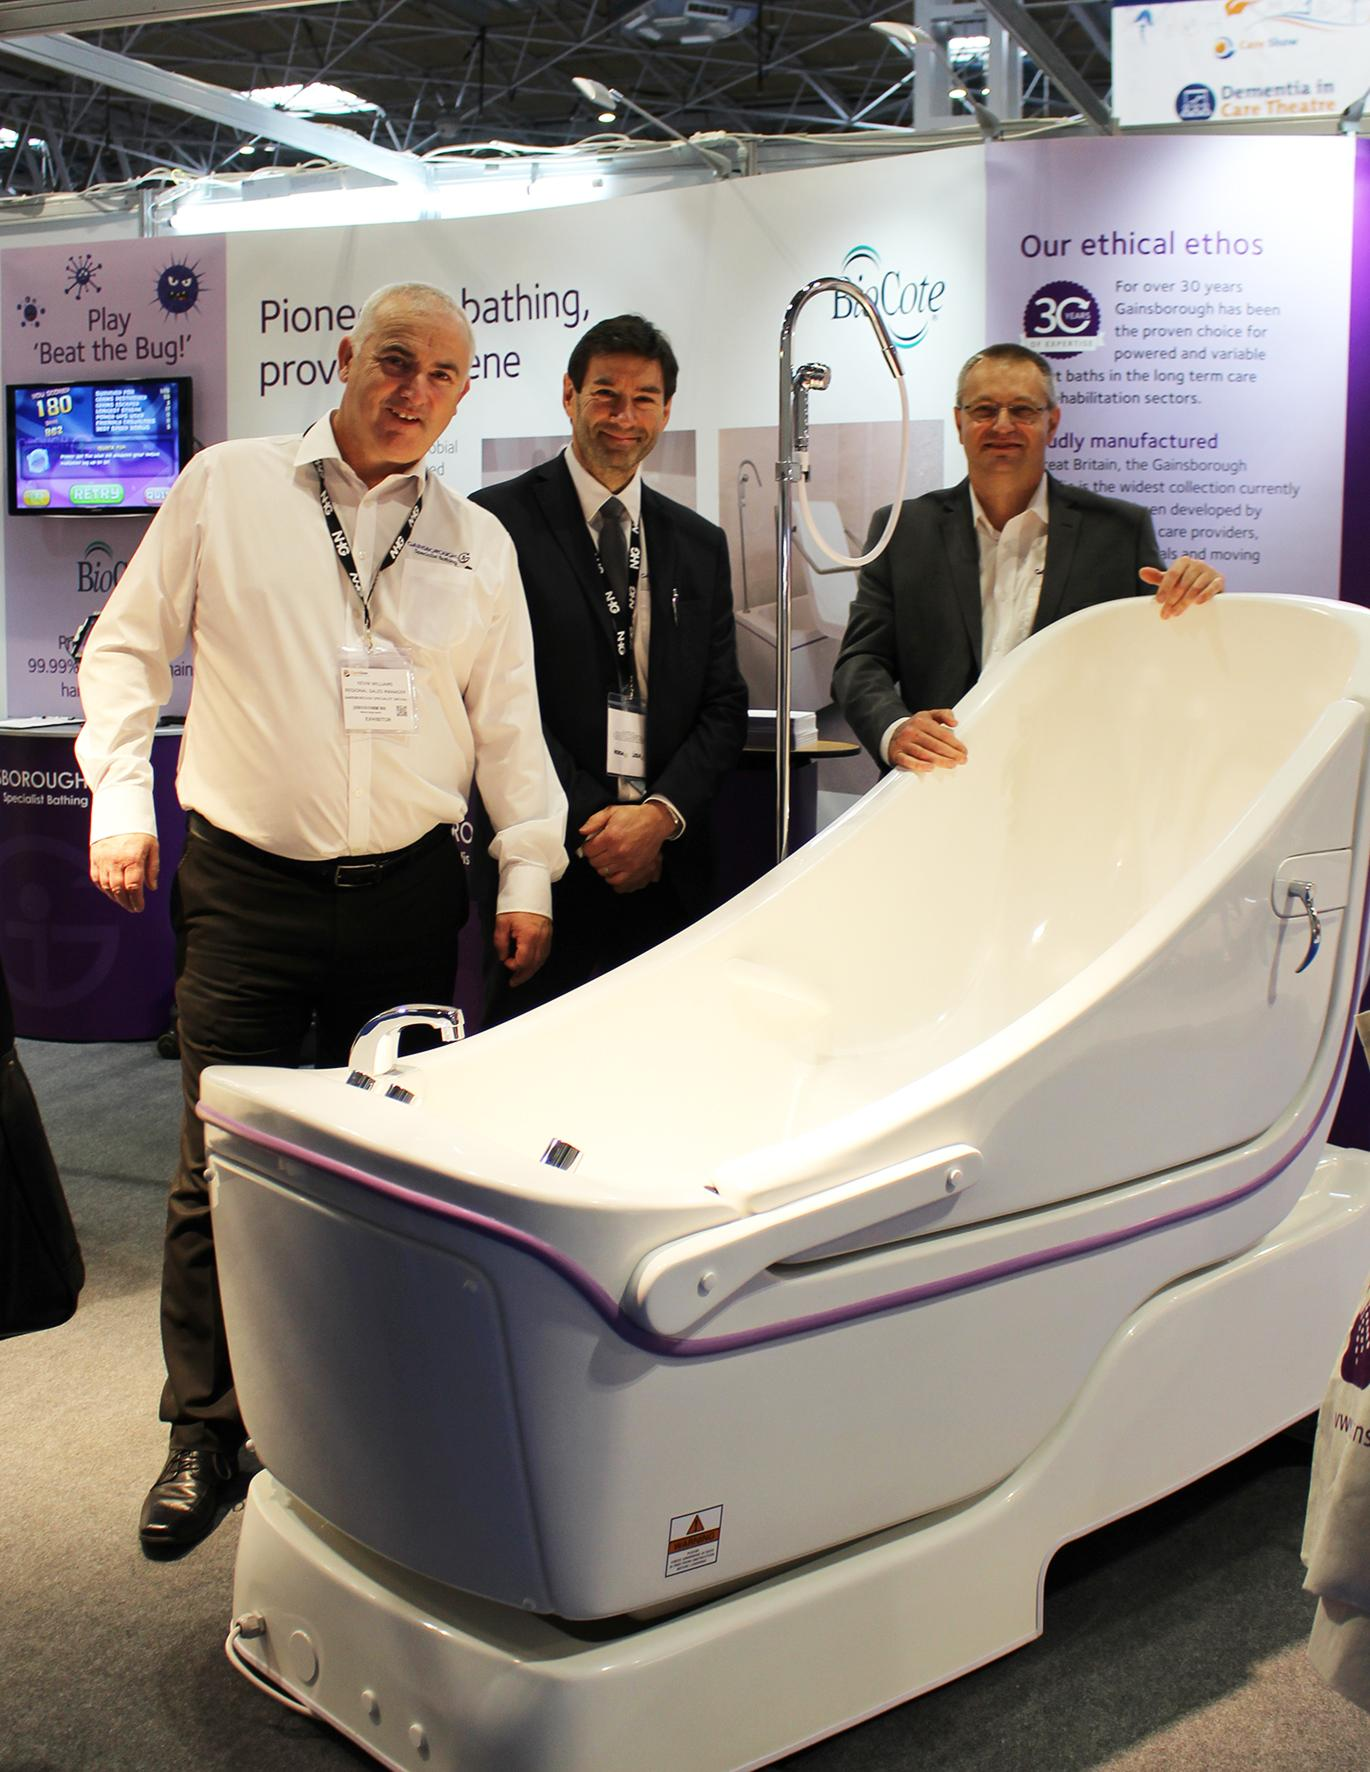 Gainsborough to showcase Sentes reclining bath  CQC excellence at Care Show